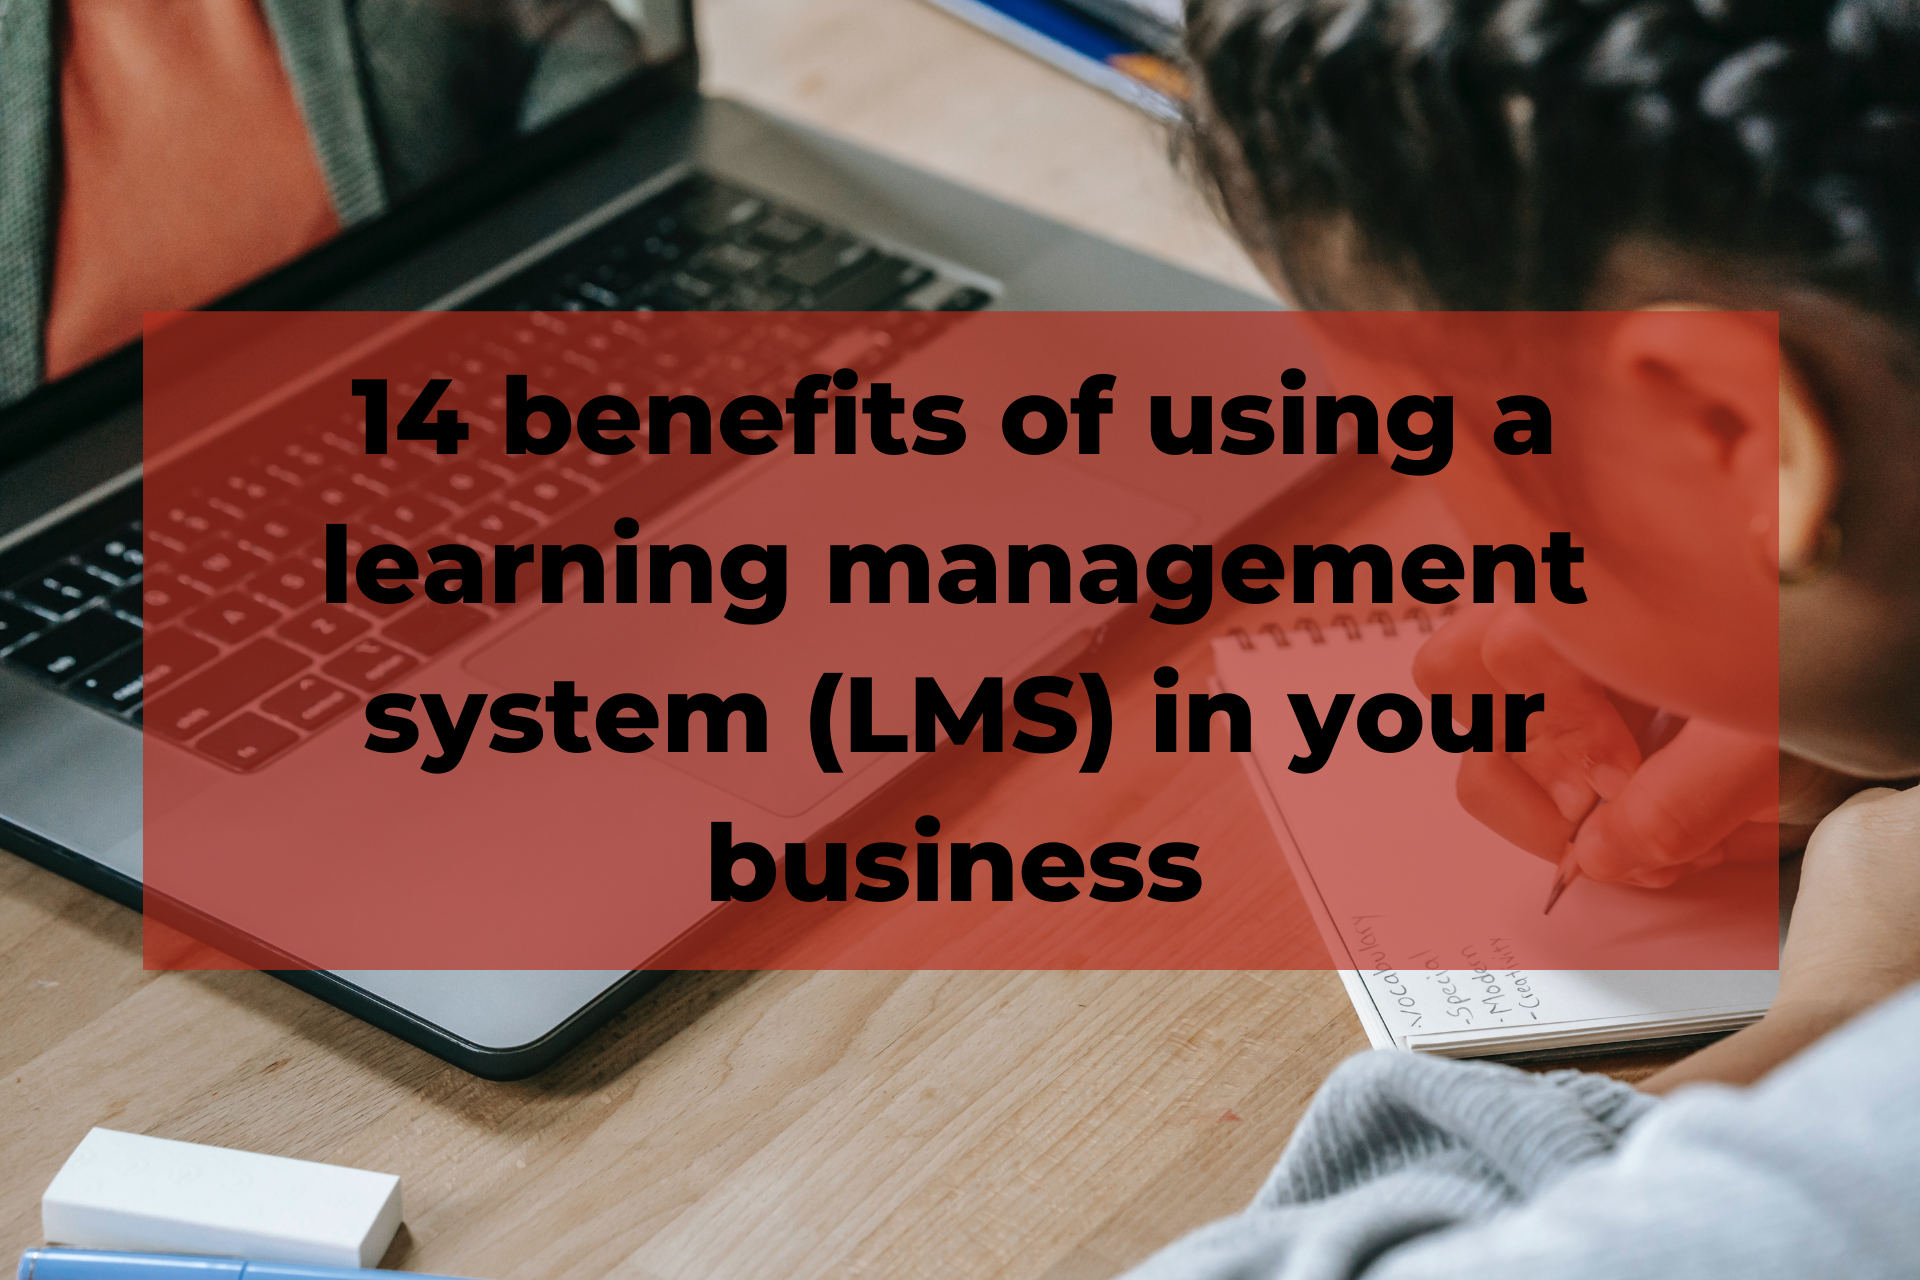 14 benefits of using a learning management system (LMS)